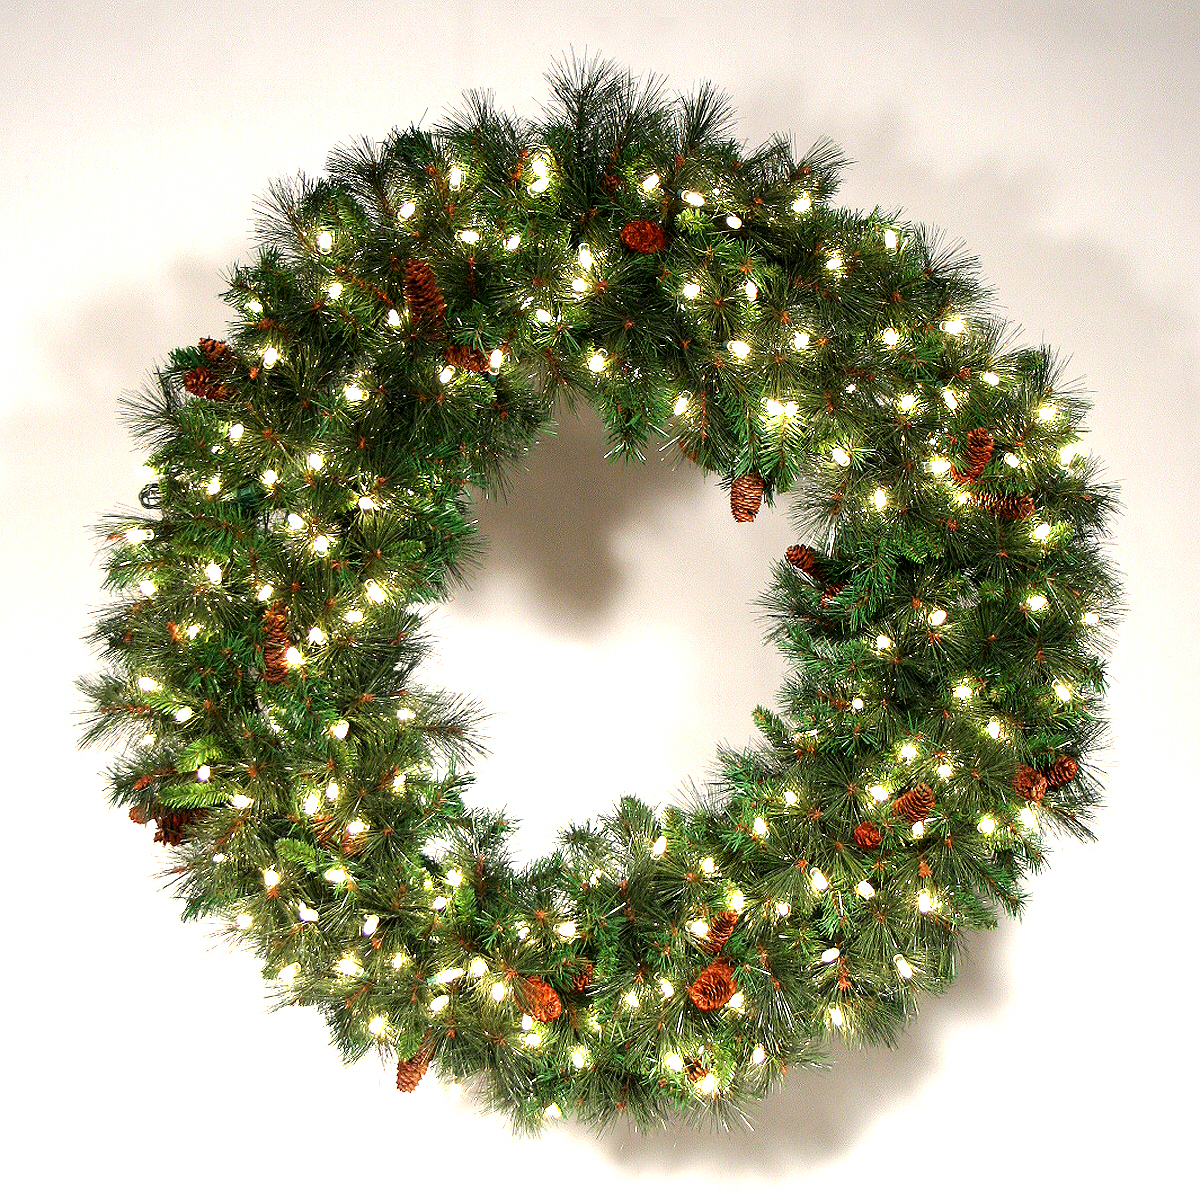 5 things about the holiday season that you should begin thinking about in September. : Outdoor ...